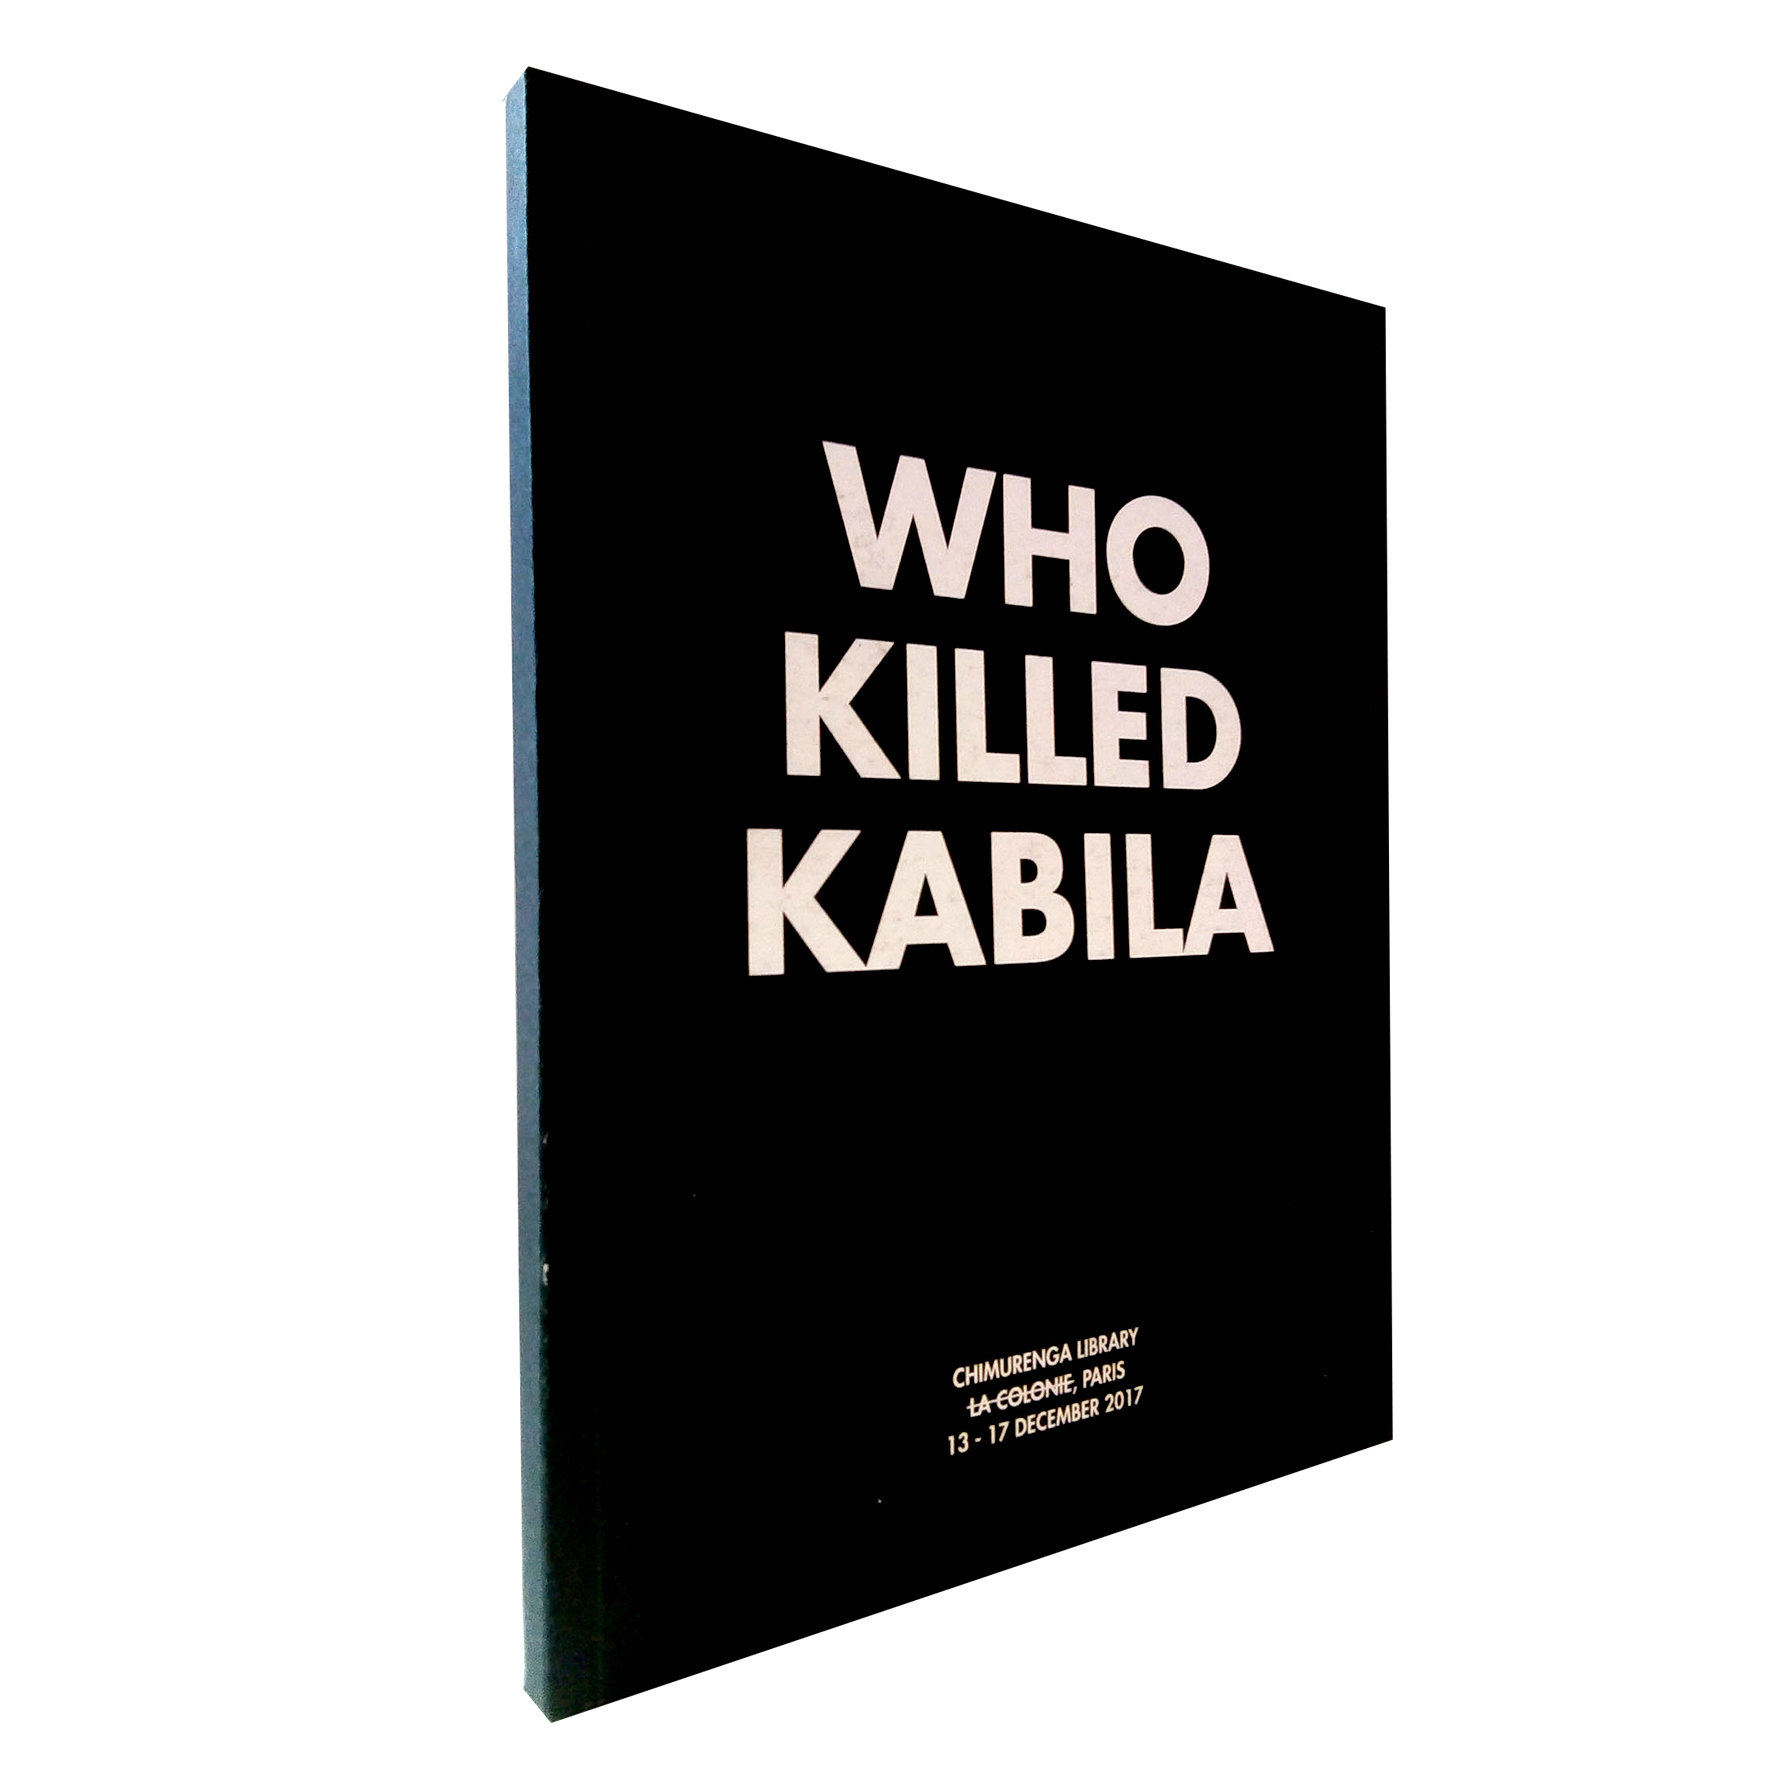 Who Killed Kabila (December, 2017) CIR01